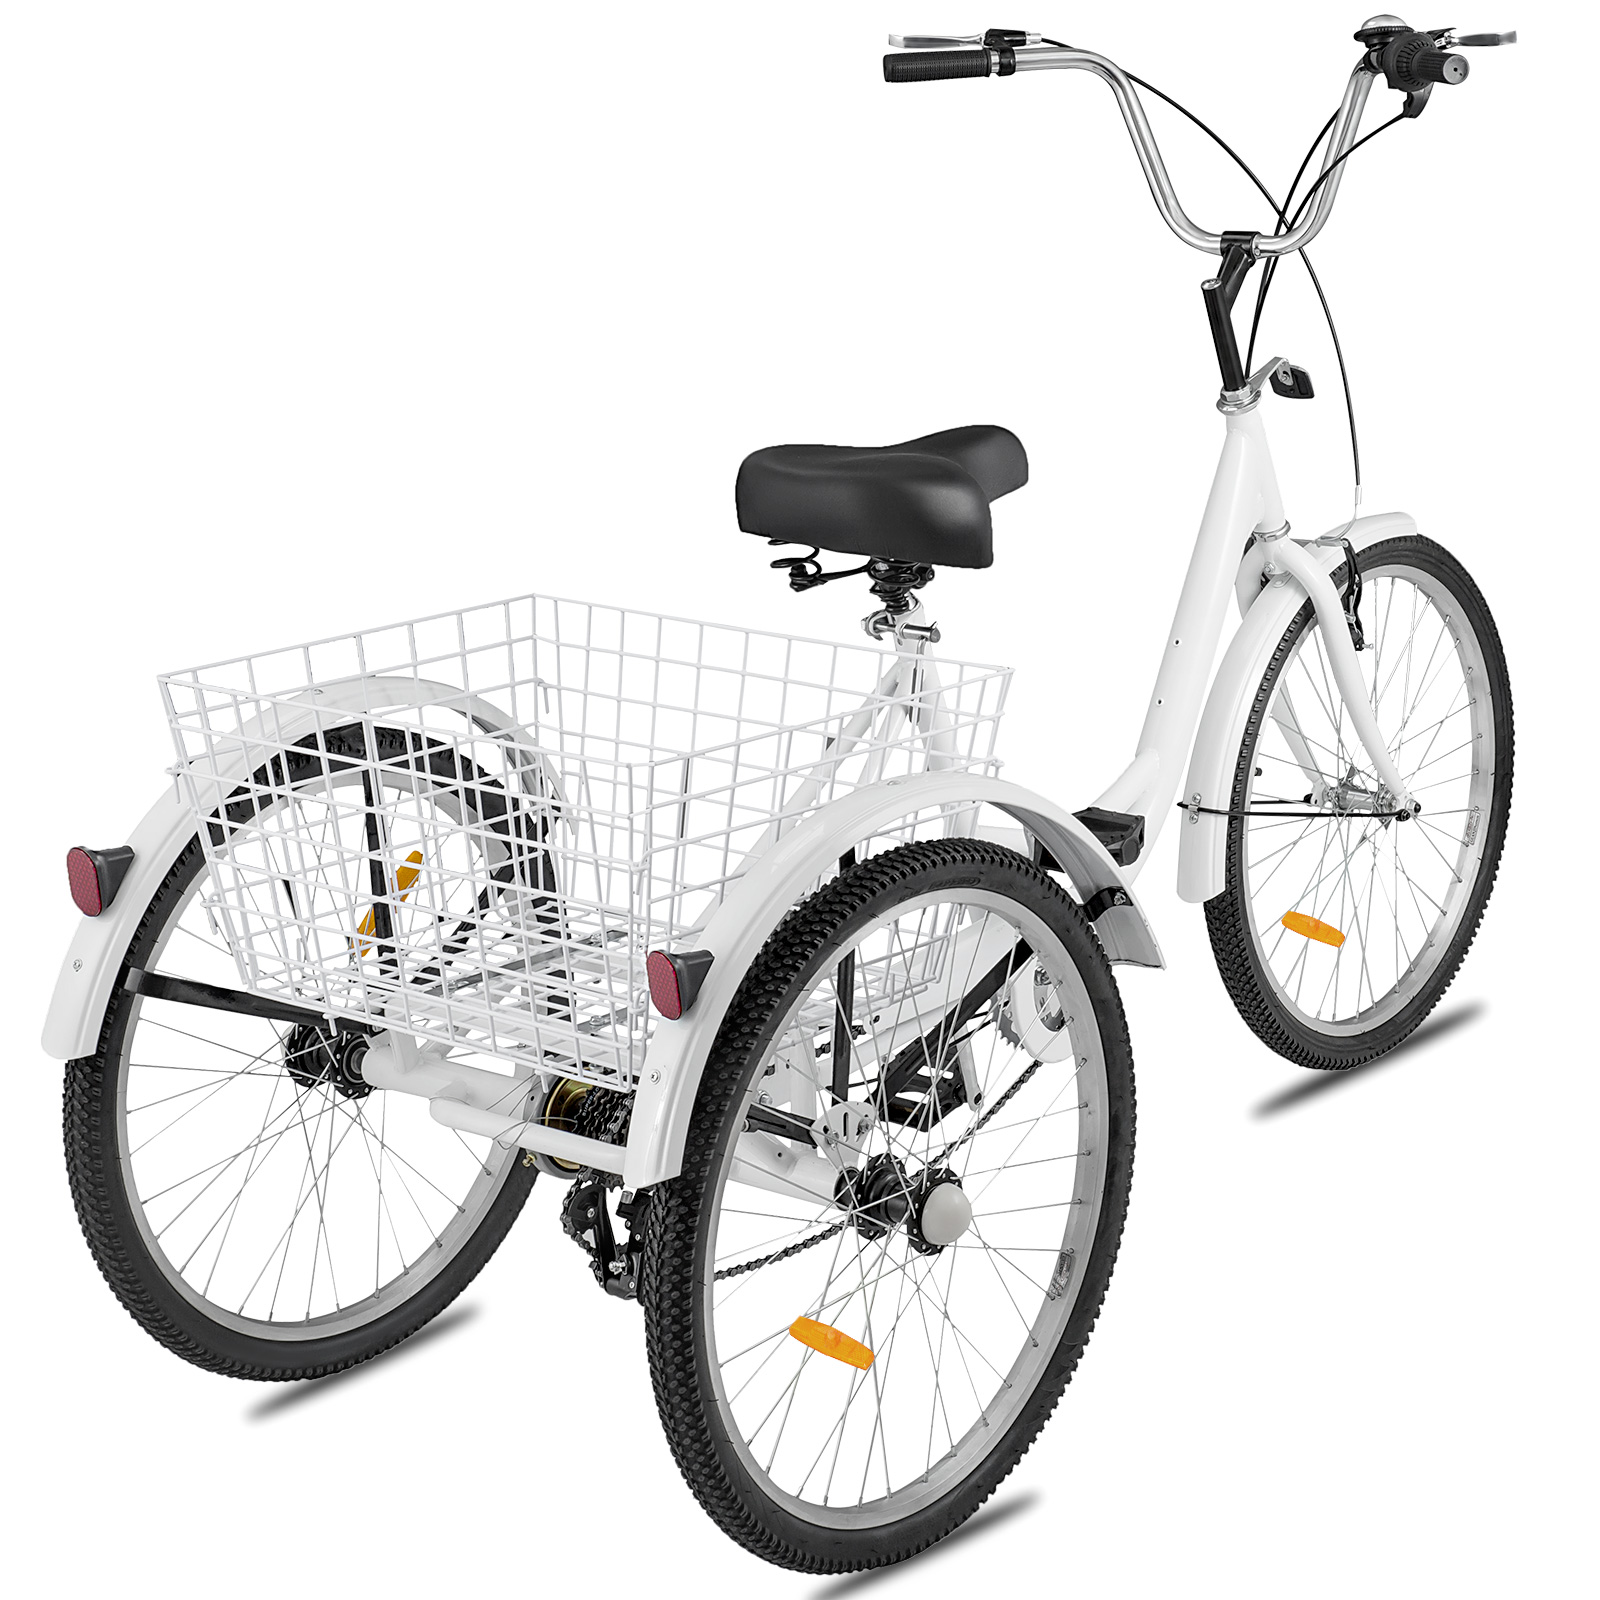 20-24-26-034-Adult-Tricycle-1-7-Speed-3-Wheel-Large-Basket-For-Shopping-Optional thumbnail 287